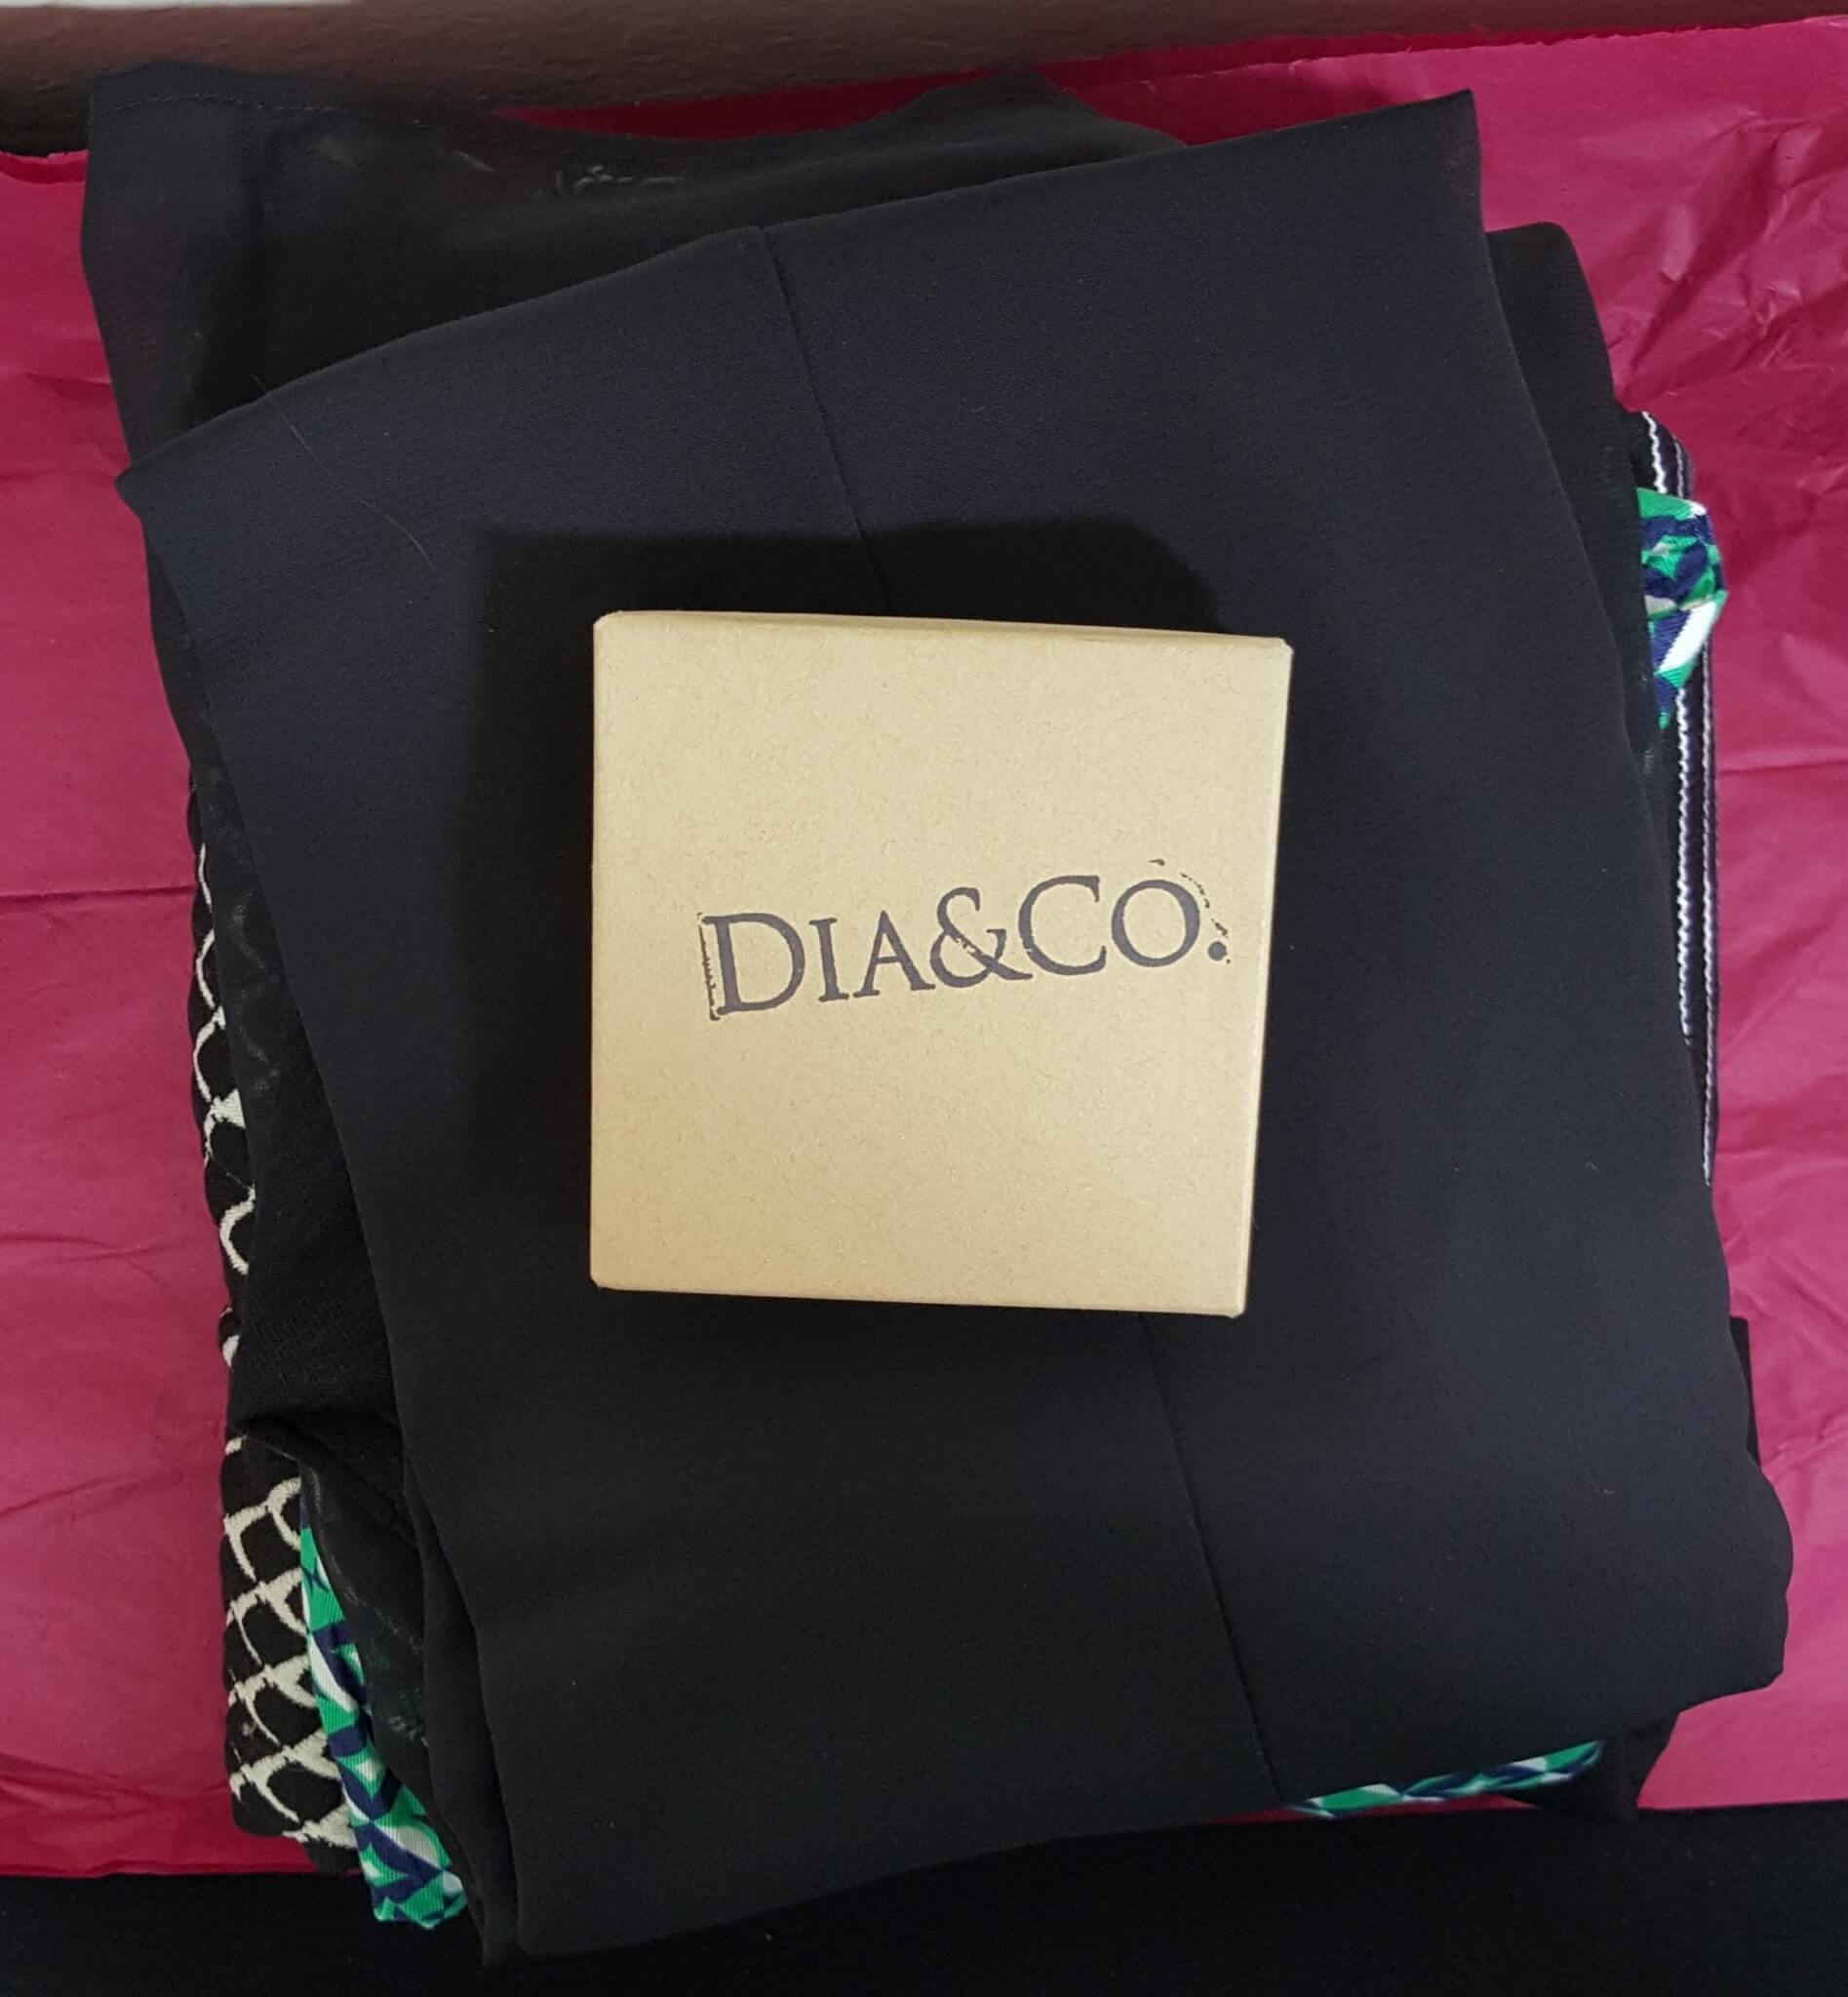 Dia & Co. Subscription Review – April 2016